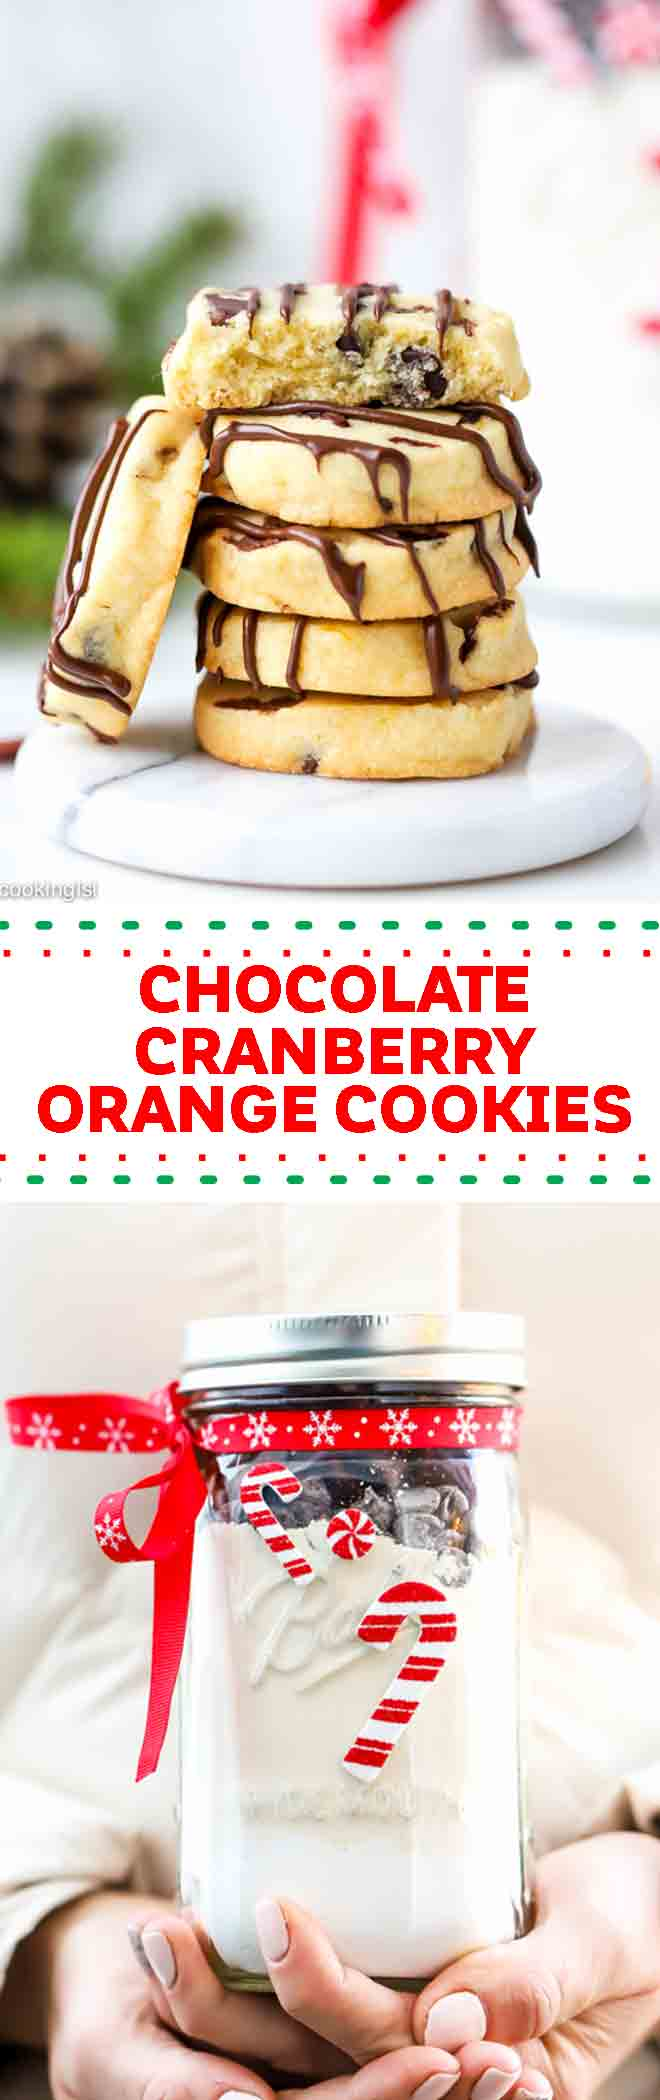 These slice and bake chocolate orange cranberry cookies combine my favorite winter flavors along withshortbread dough. Soft, buttery, chewy and chocolatey.